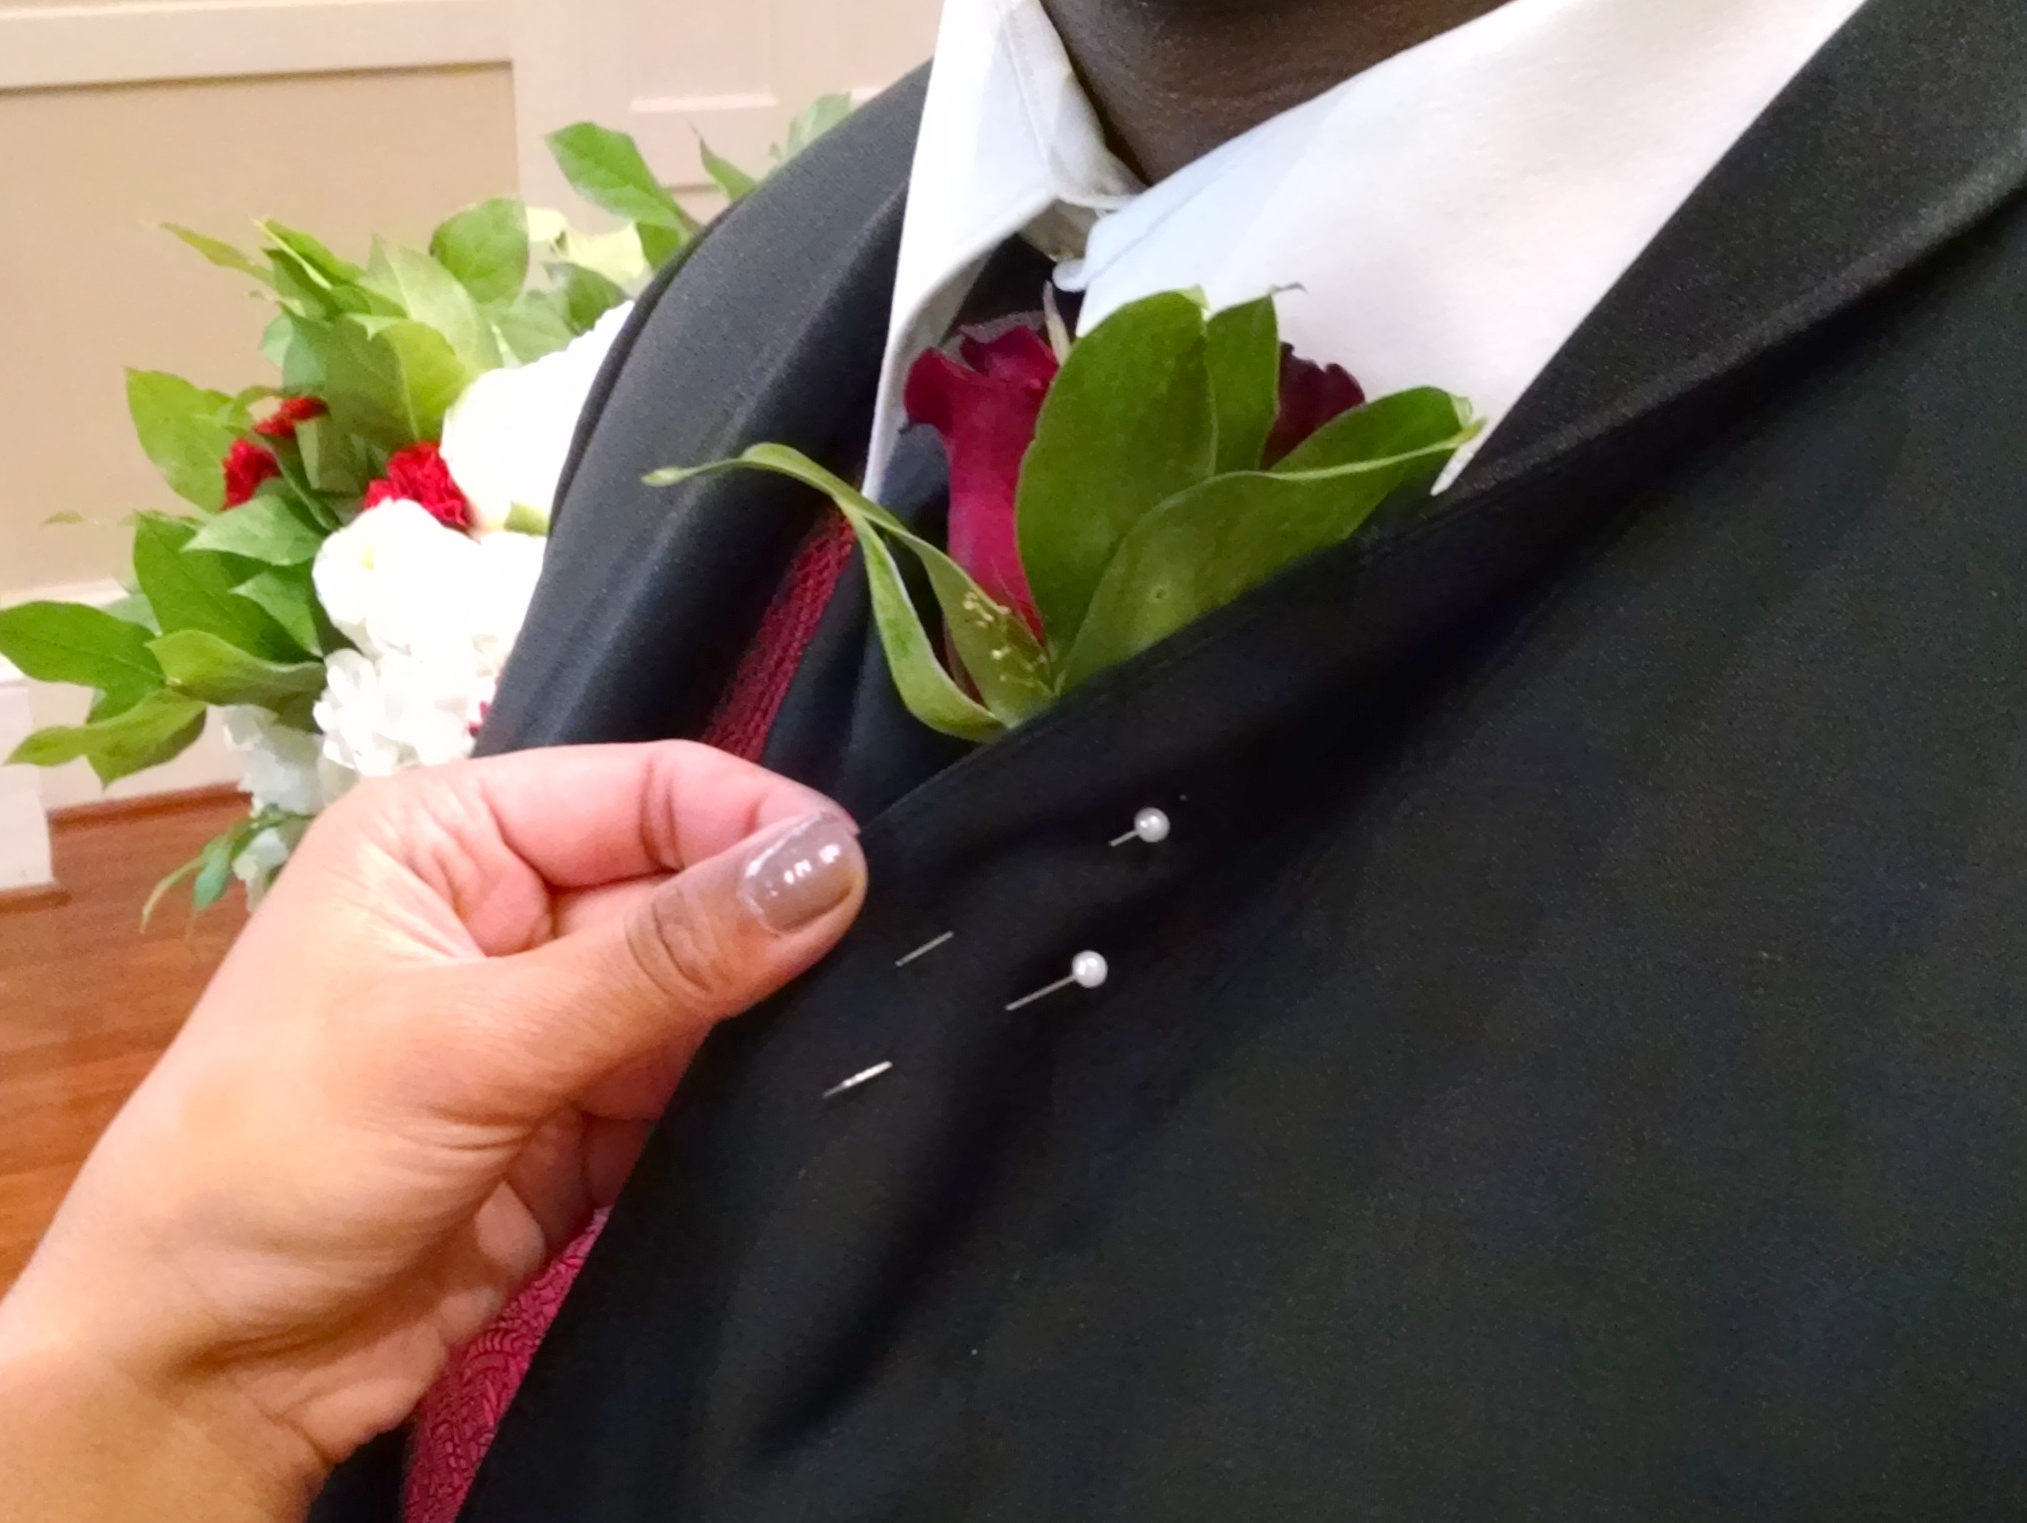 Boom!  Two pins through the lapel, stem, and back through the lapel.  All without stabbing anyone!